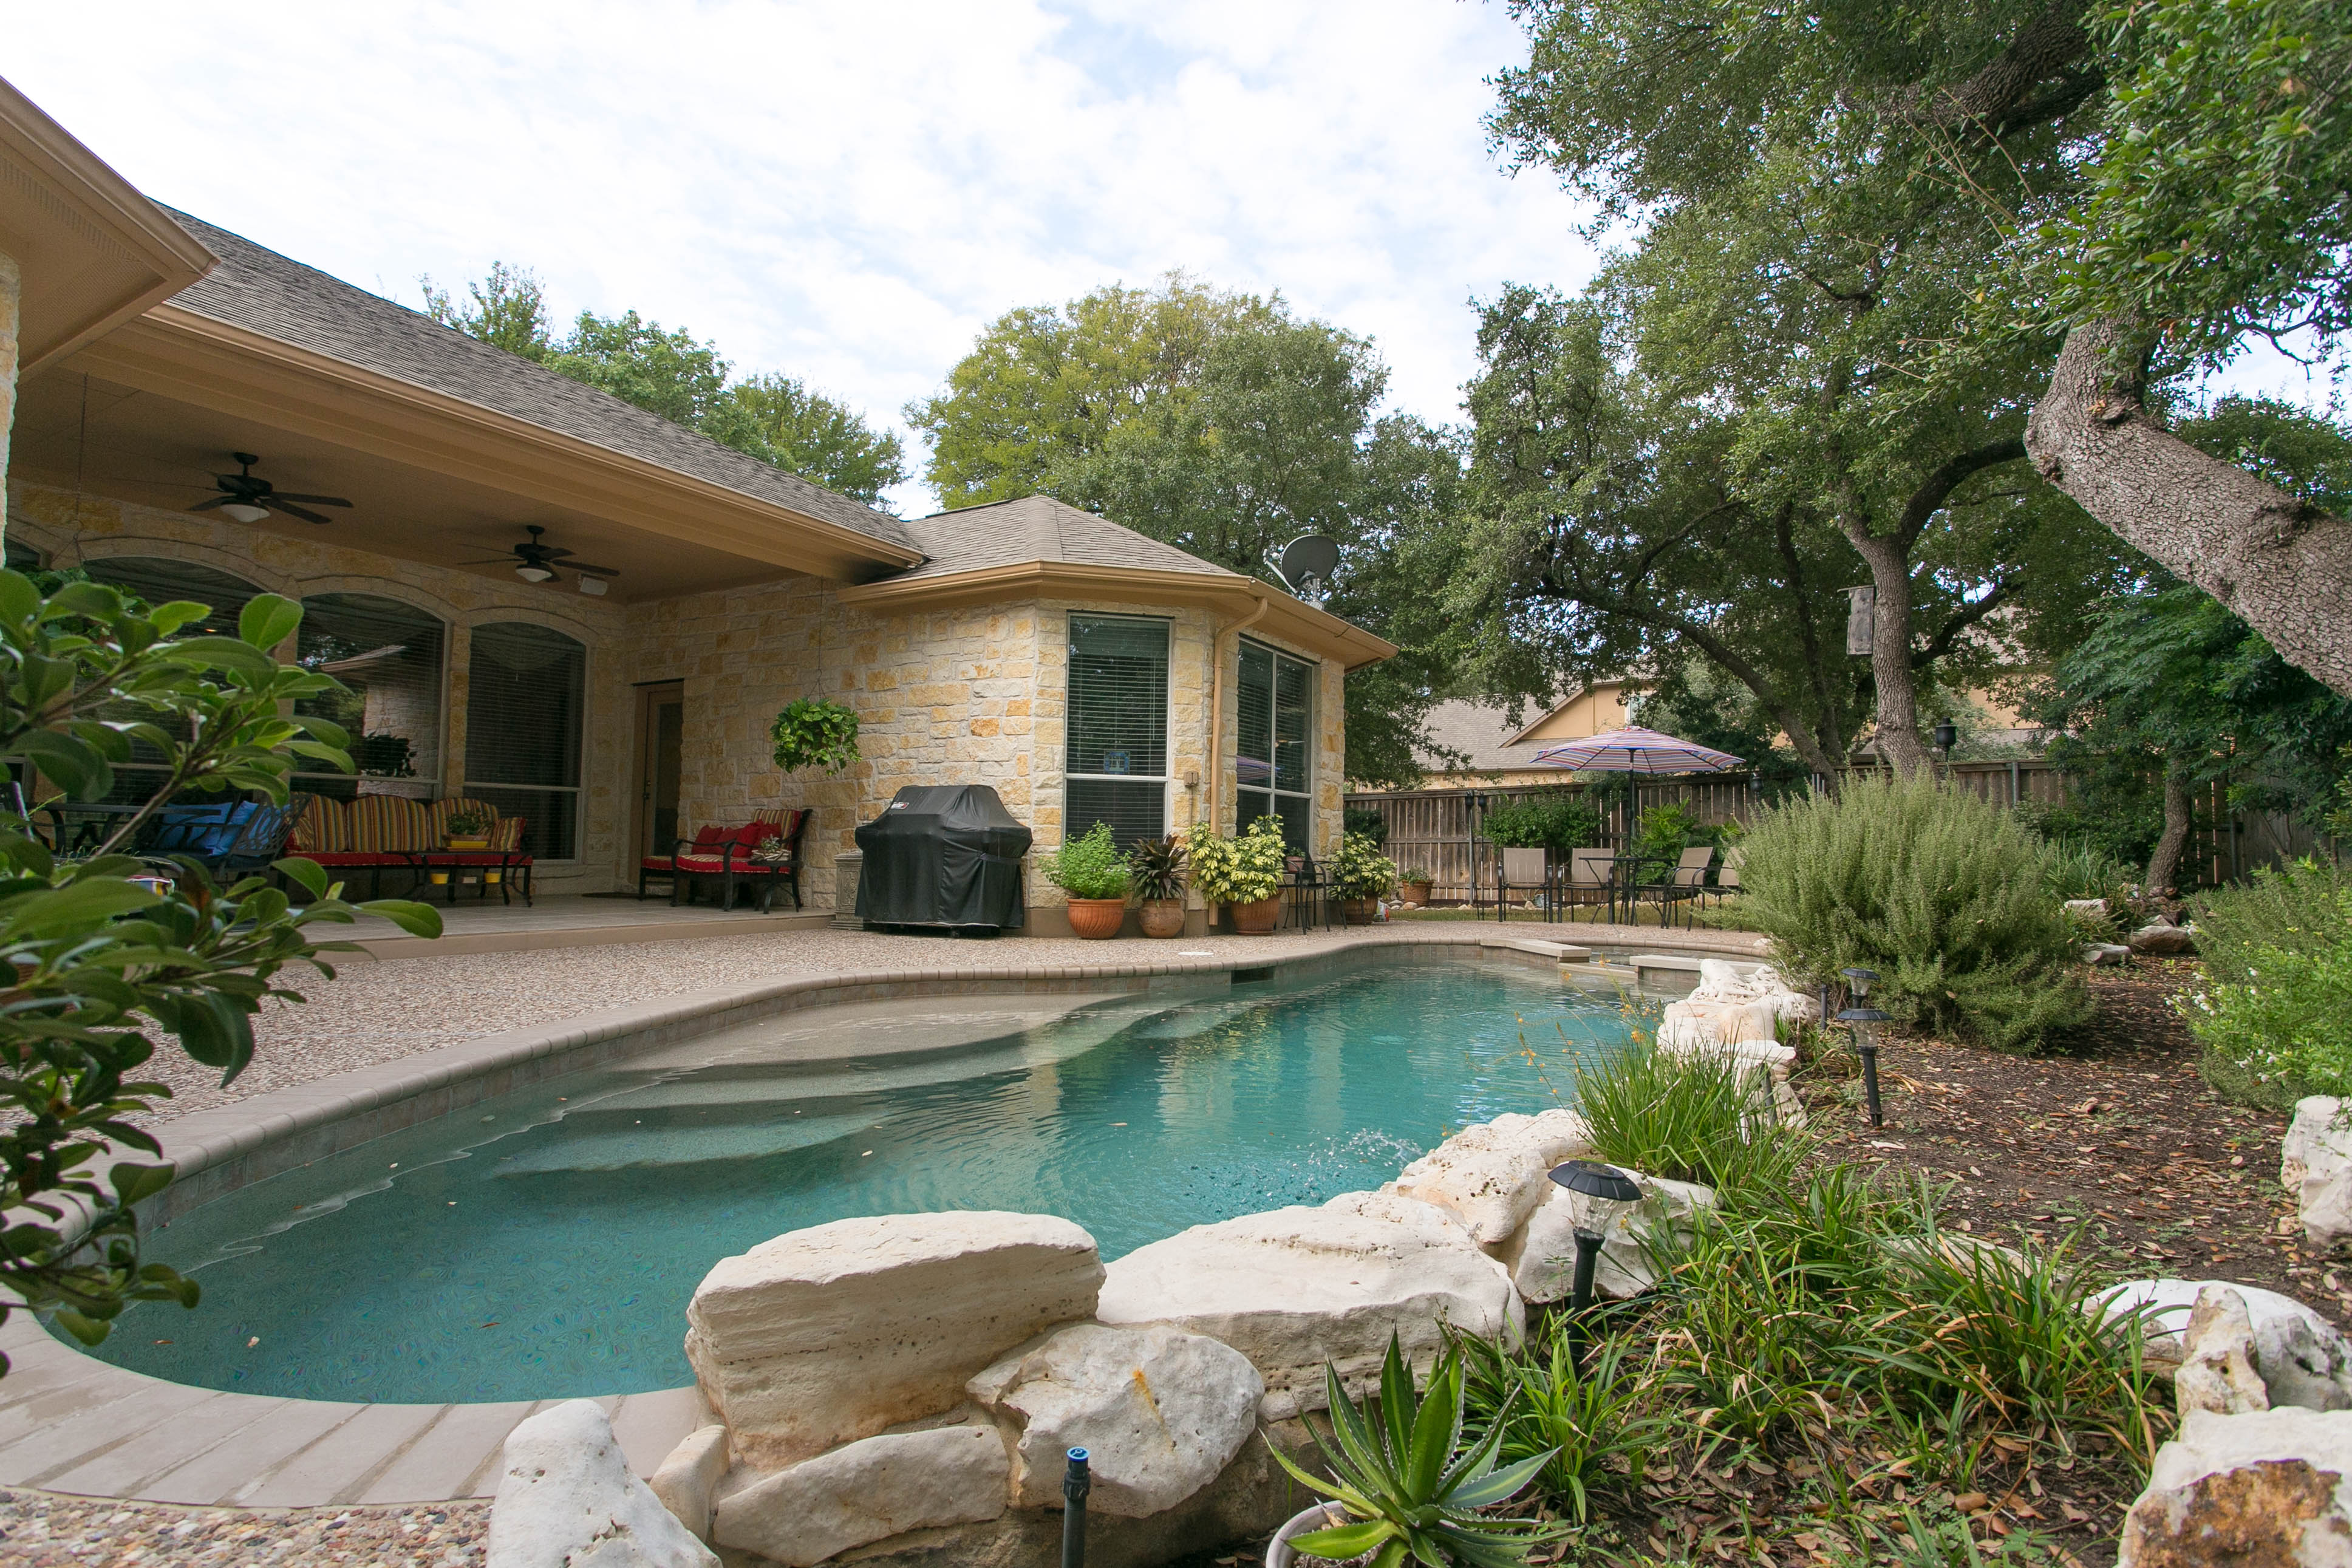 Single Family Home for Sale at Gorgeous One Story Home 270 Abbott Dr Austin, Texas 78737 United States